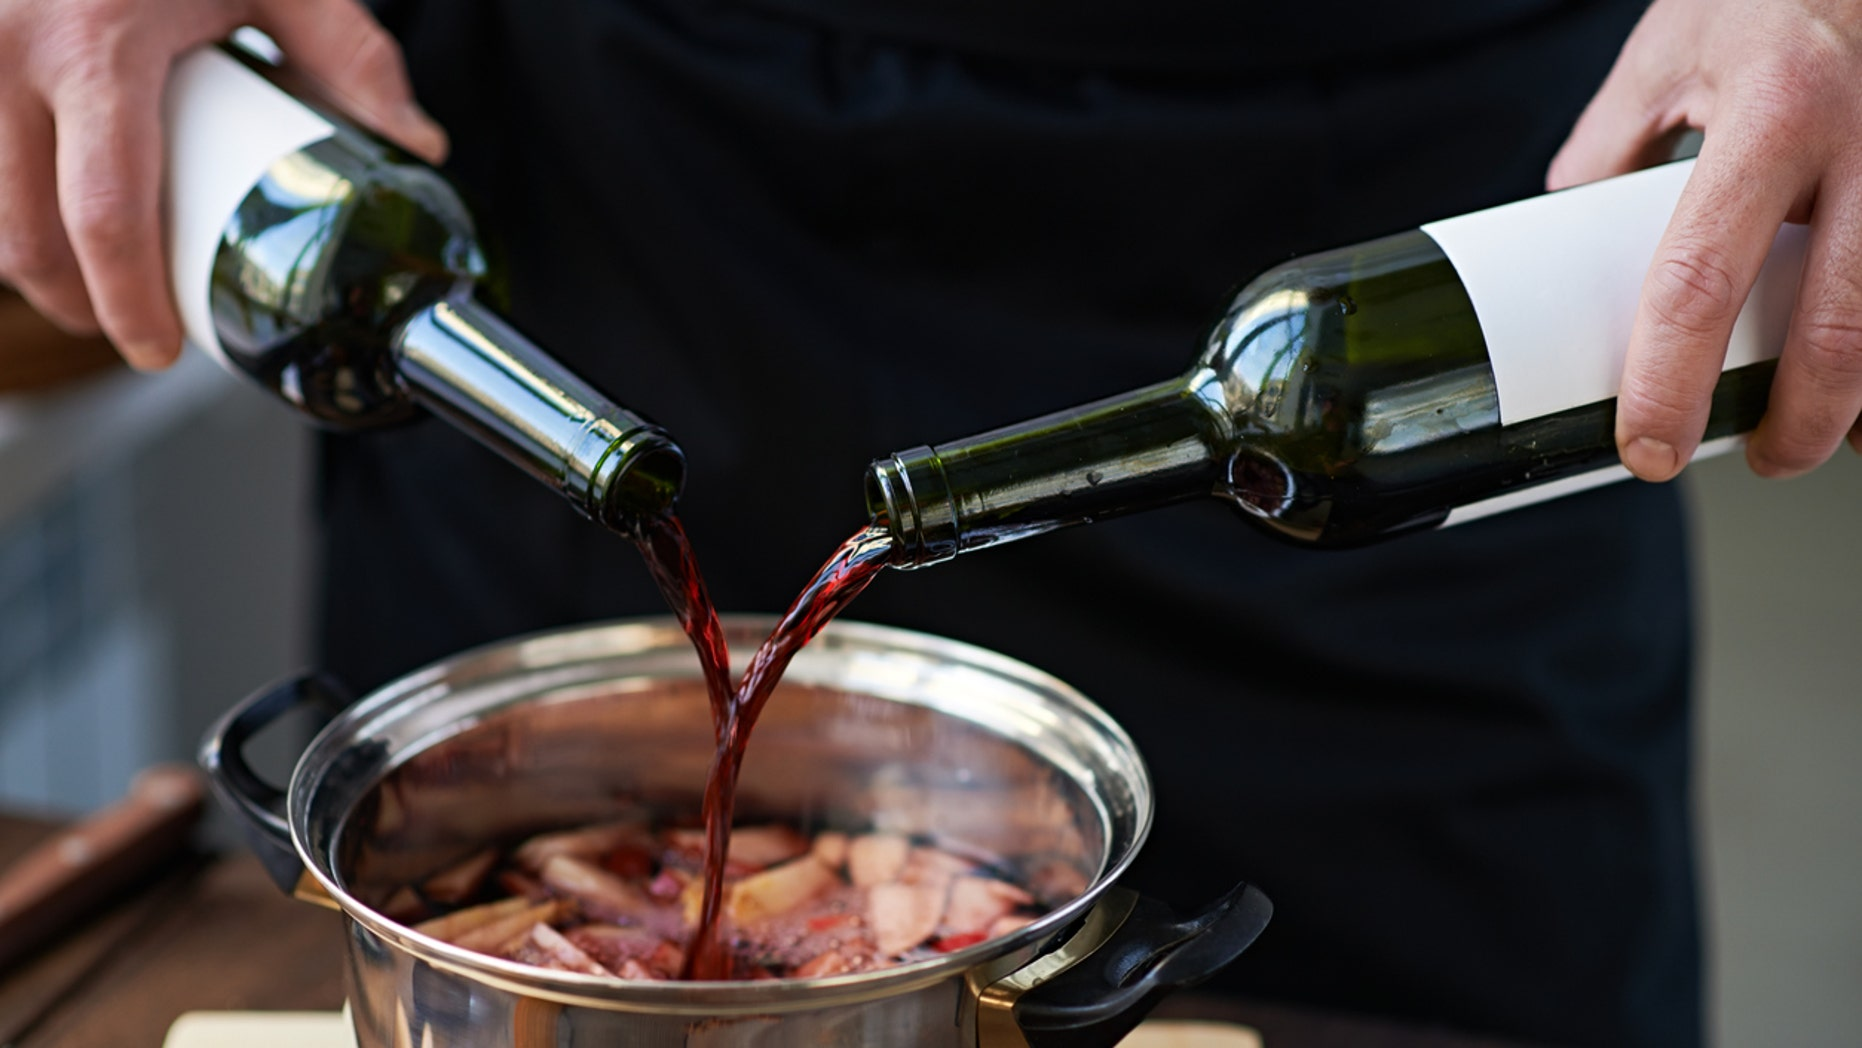 Cooking booze — that is, low-grade booze that's been churned with salt and preservatives including potassium metabisulfate and potassium sorbate — has 0 use in a kitchen.